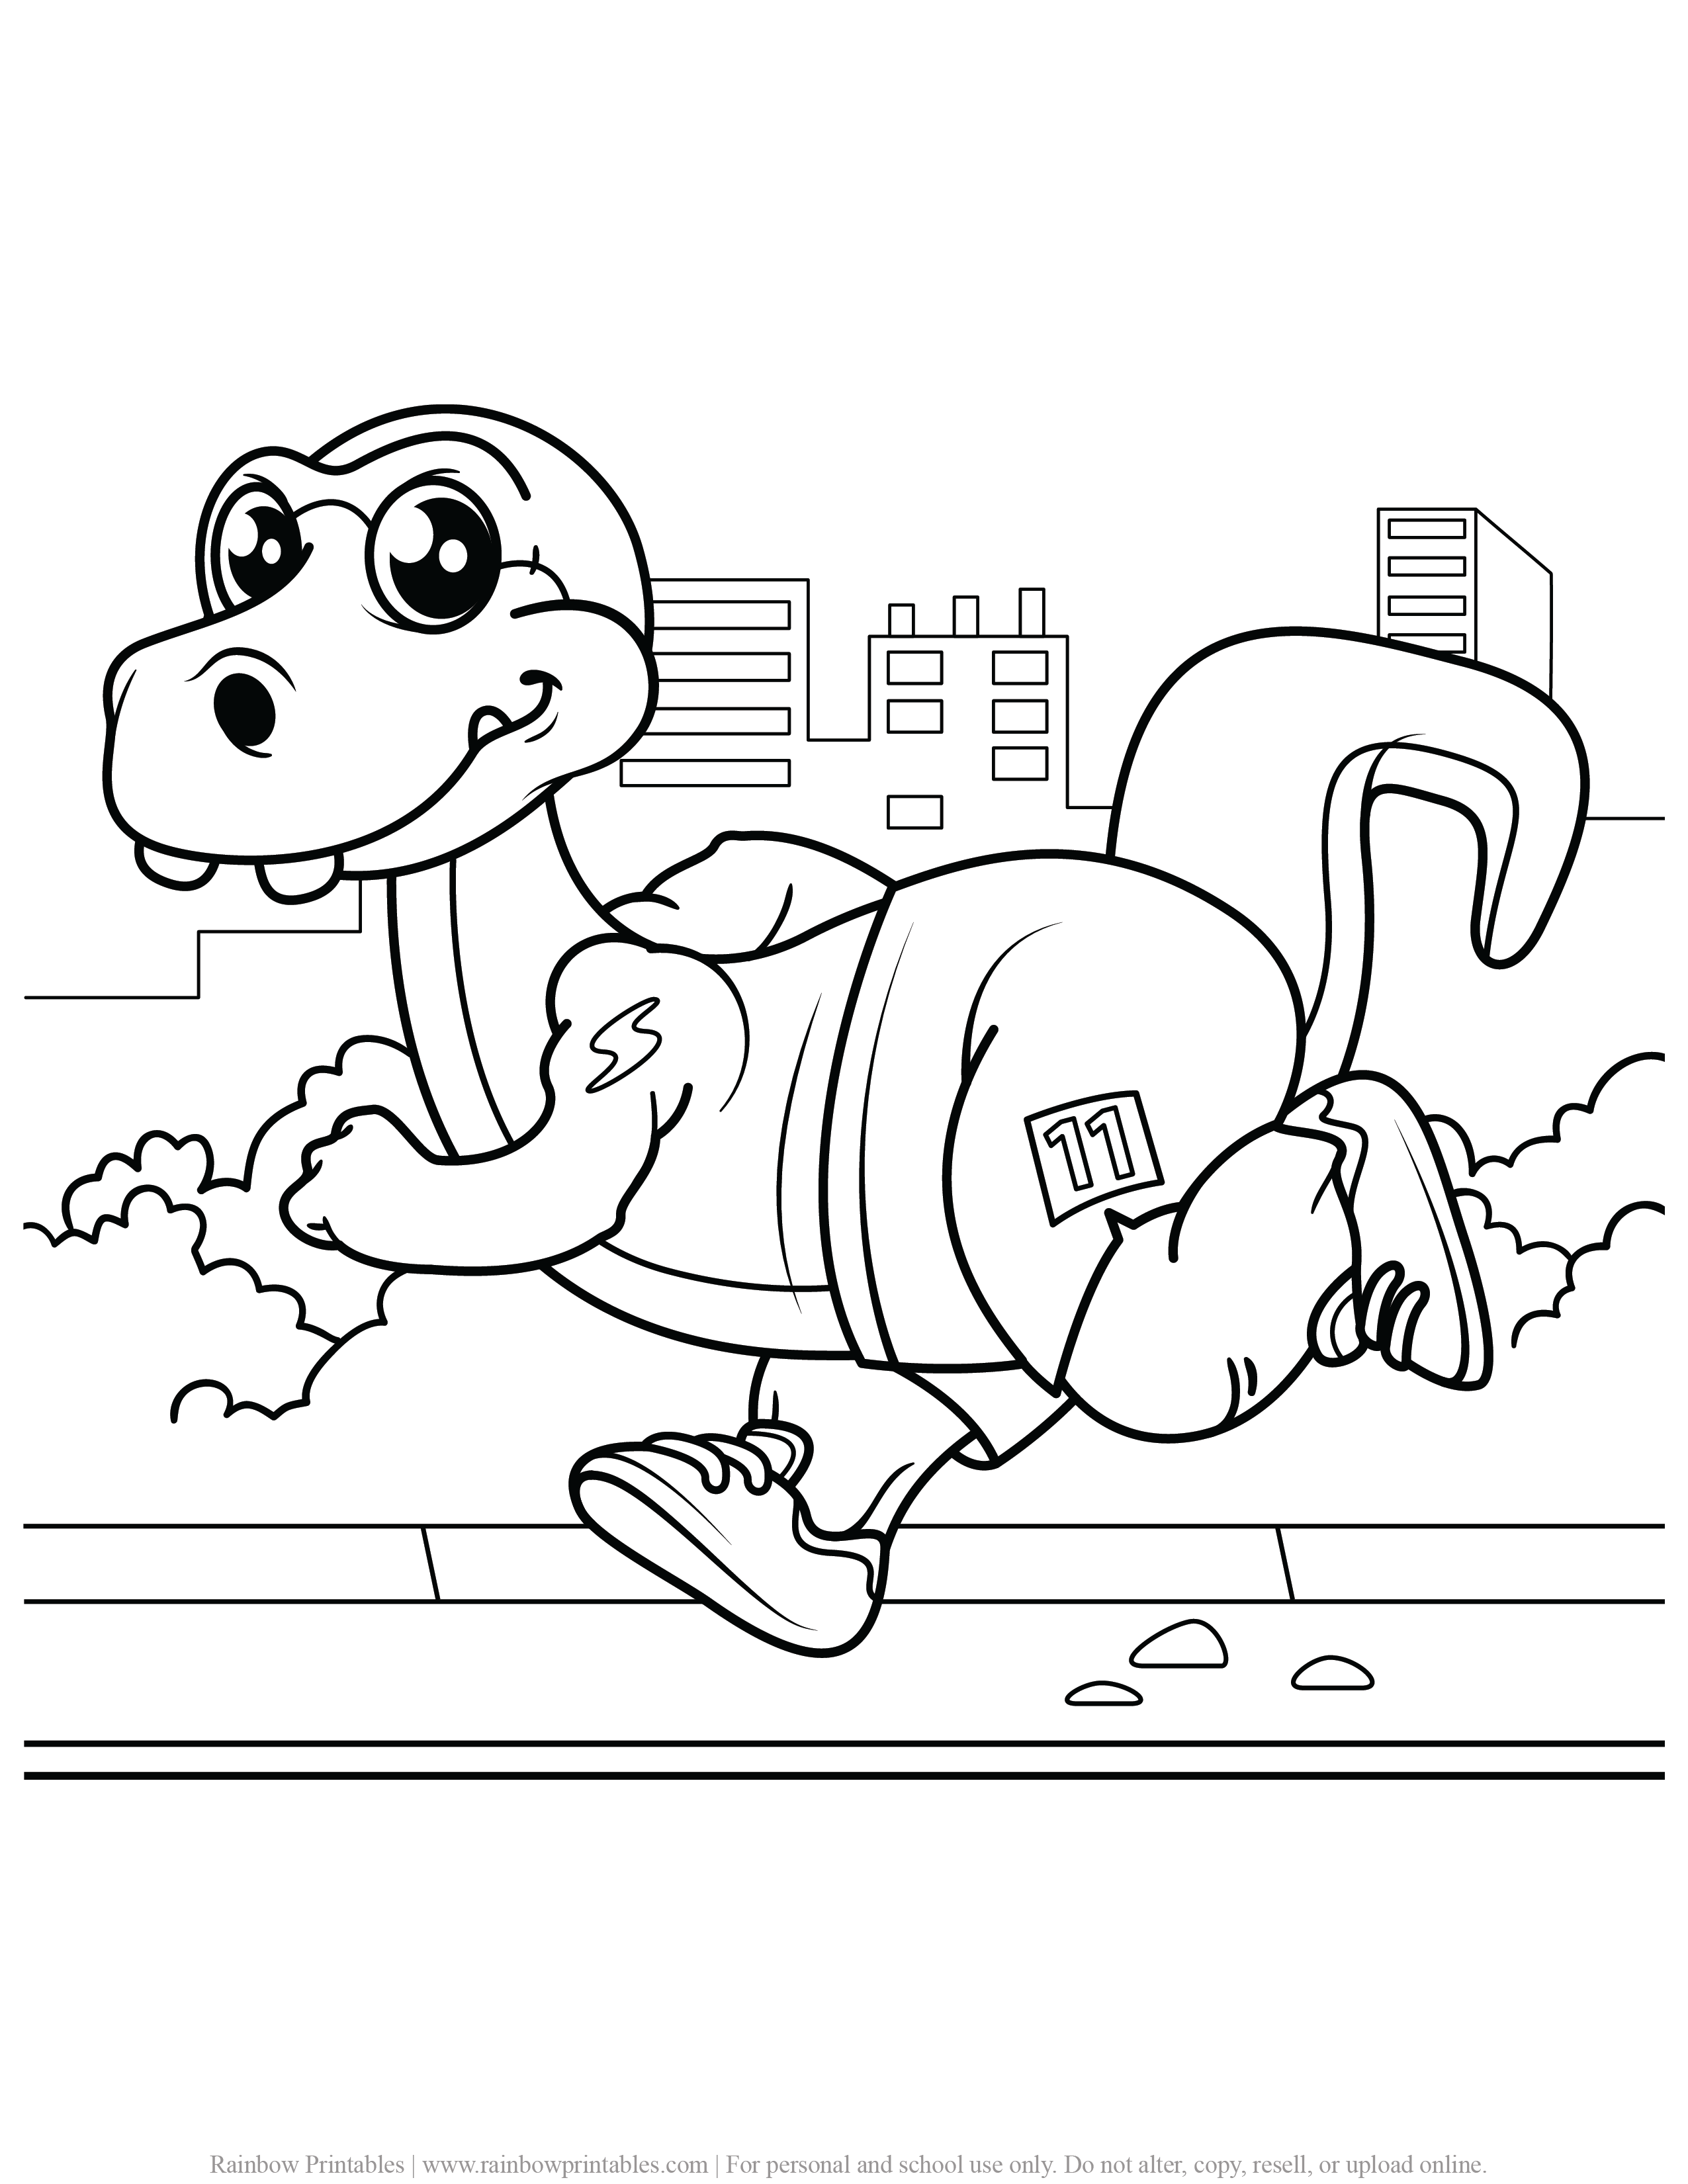 FREE DINOSAUR COLORING PAGES ACTIVITY FOR KIDS AND BOYS DINO DRAGON PRINTABLE-22